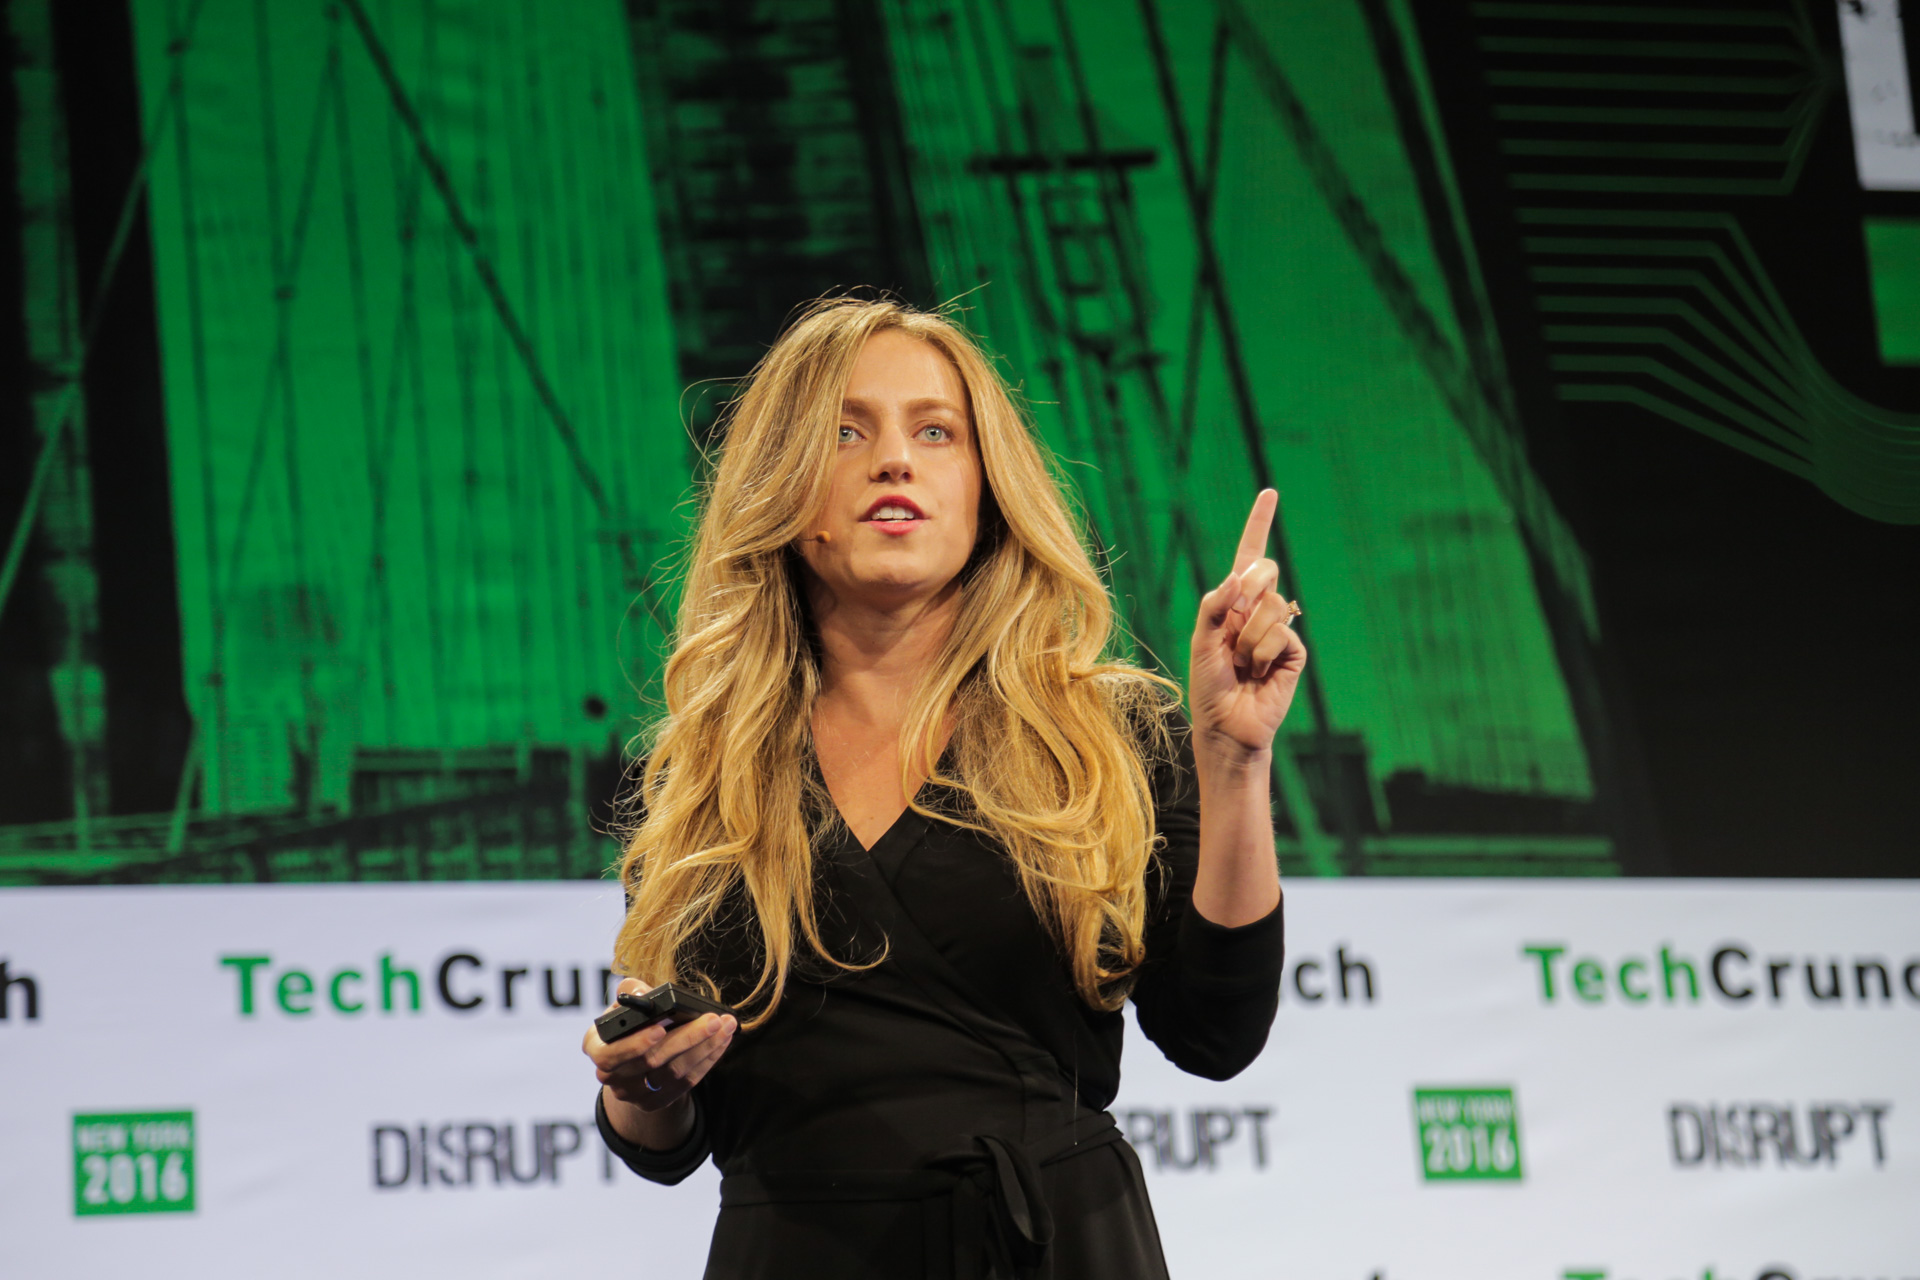 Ritual Vitamins pulls in $10.5 million from Founders Fund to scale the business